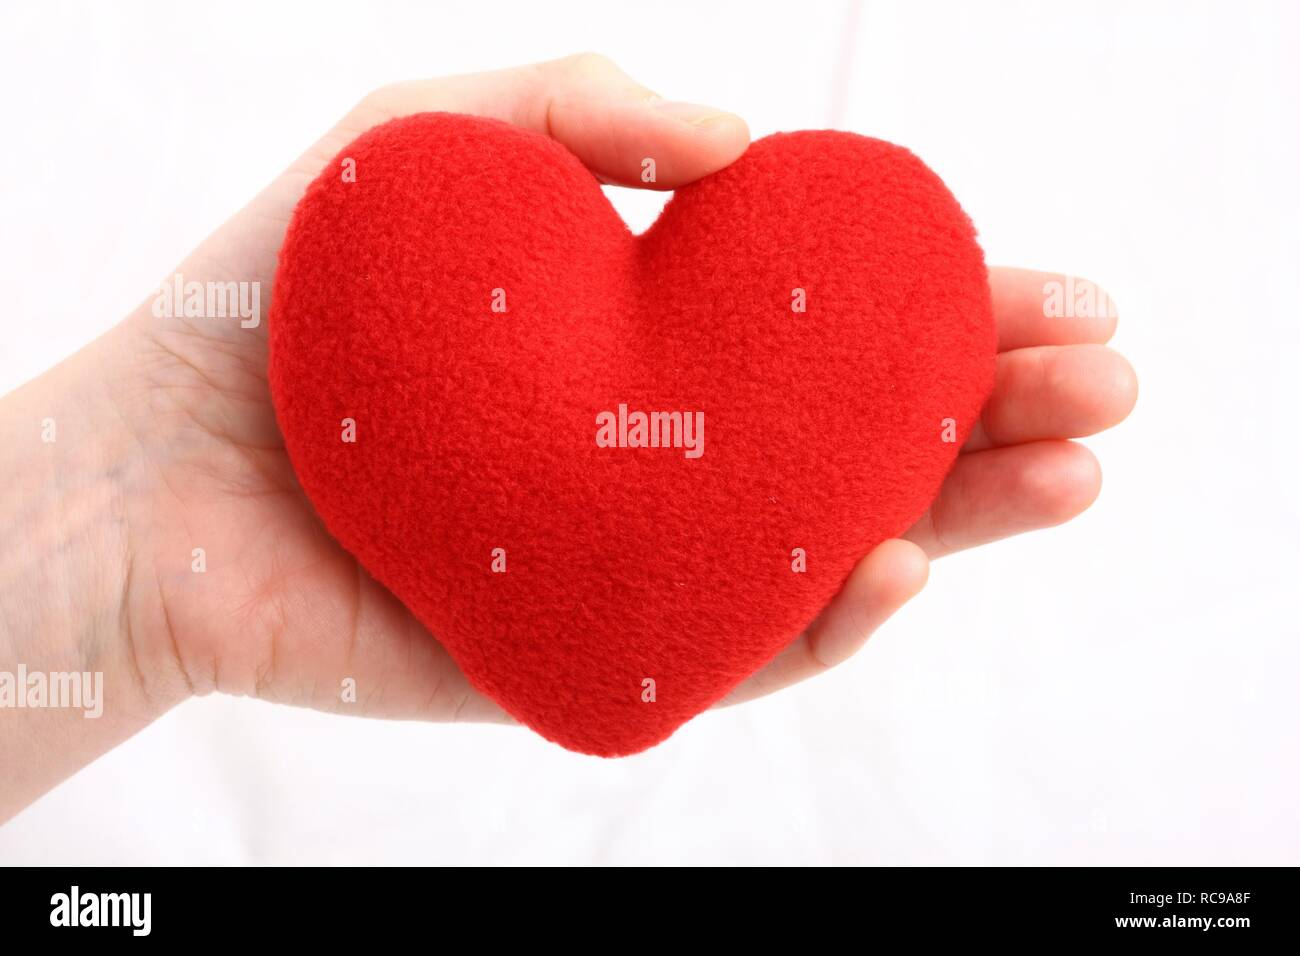 Hand holding a red heart, symbolic image for heart disease, heart attack, a diseased heart, cardiology - Stock Image